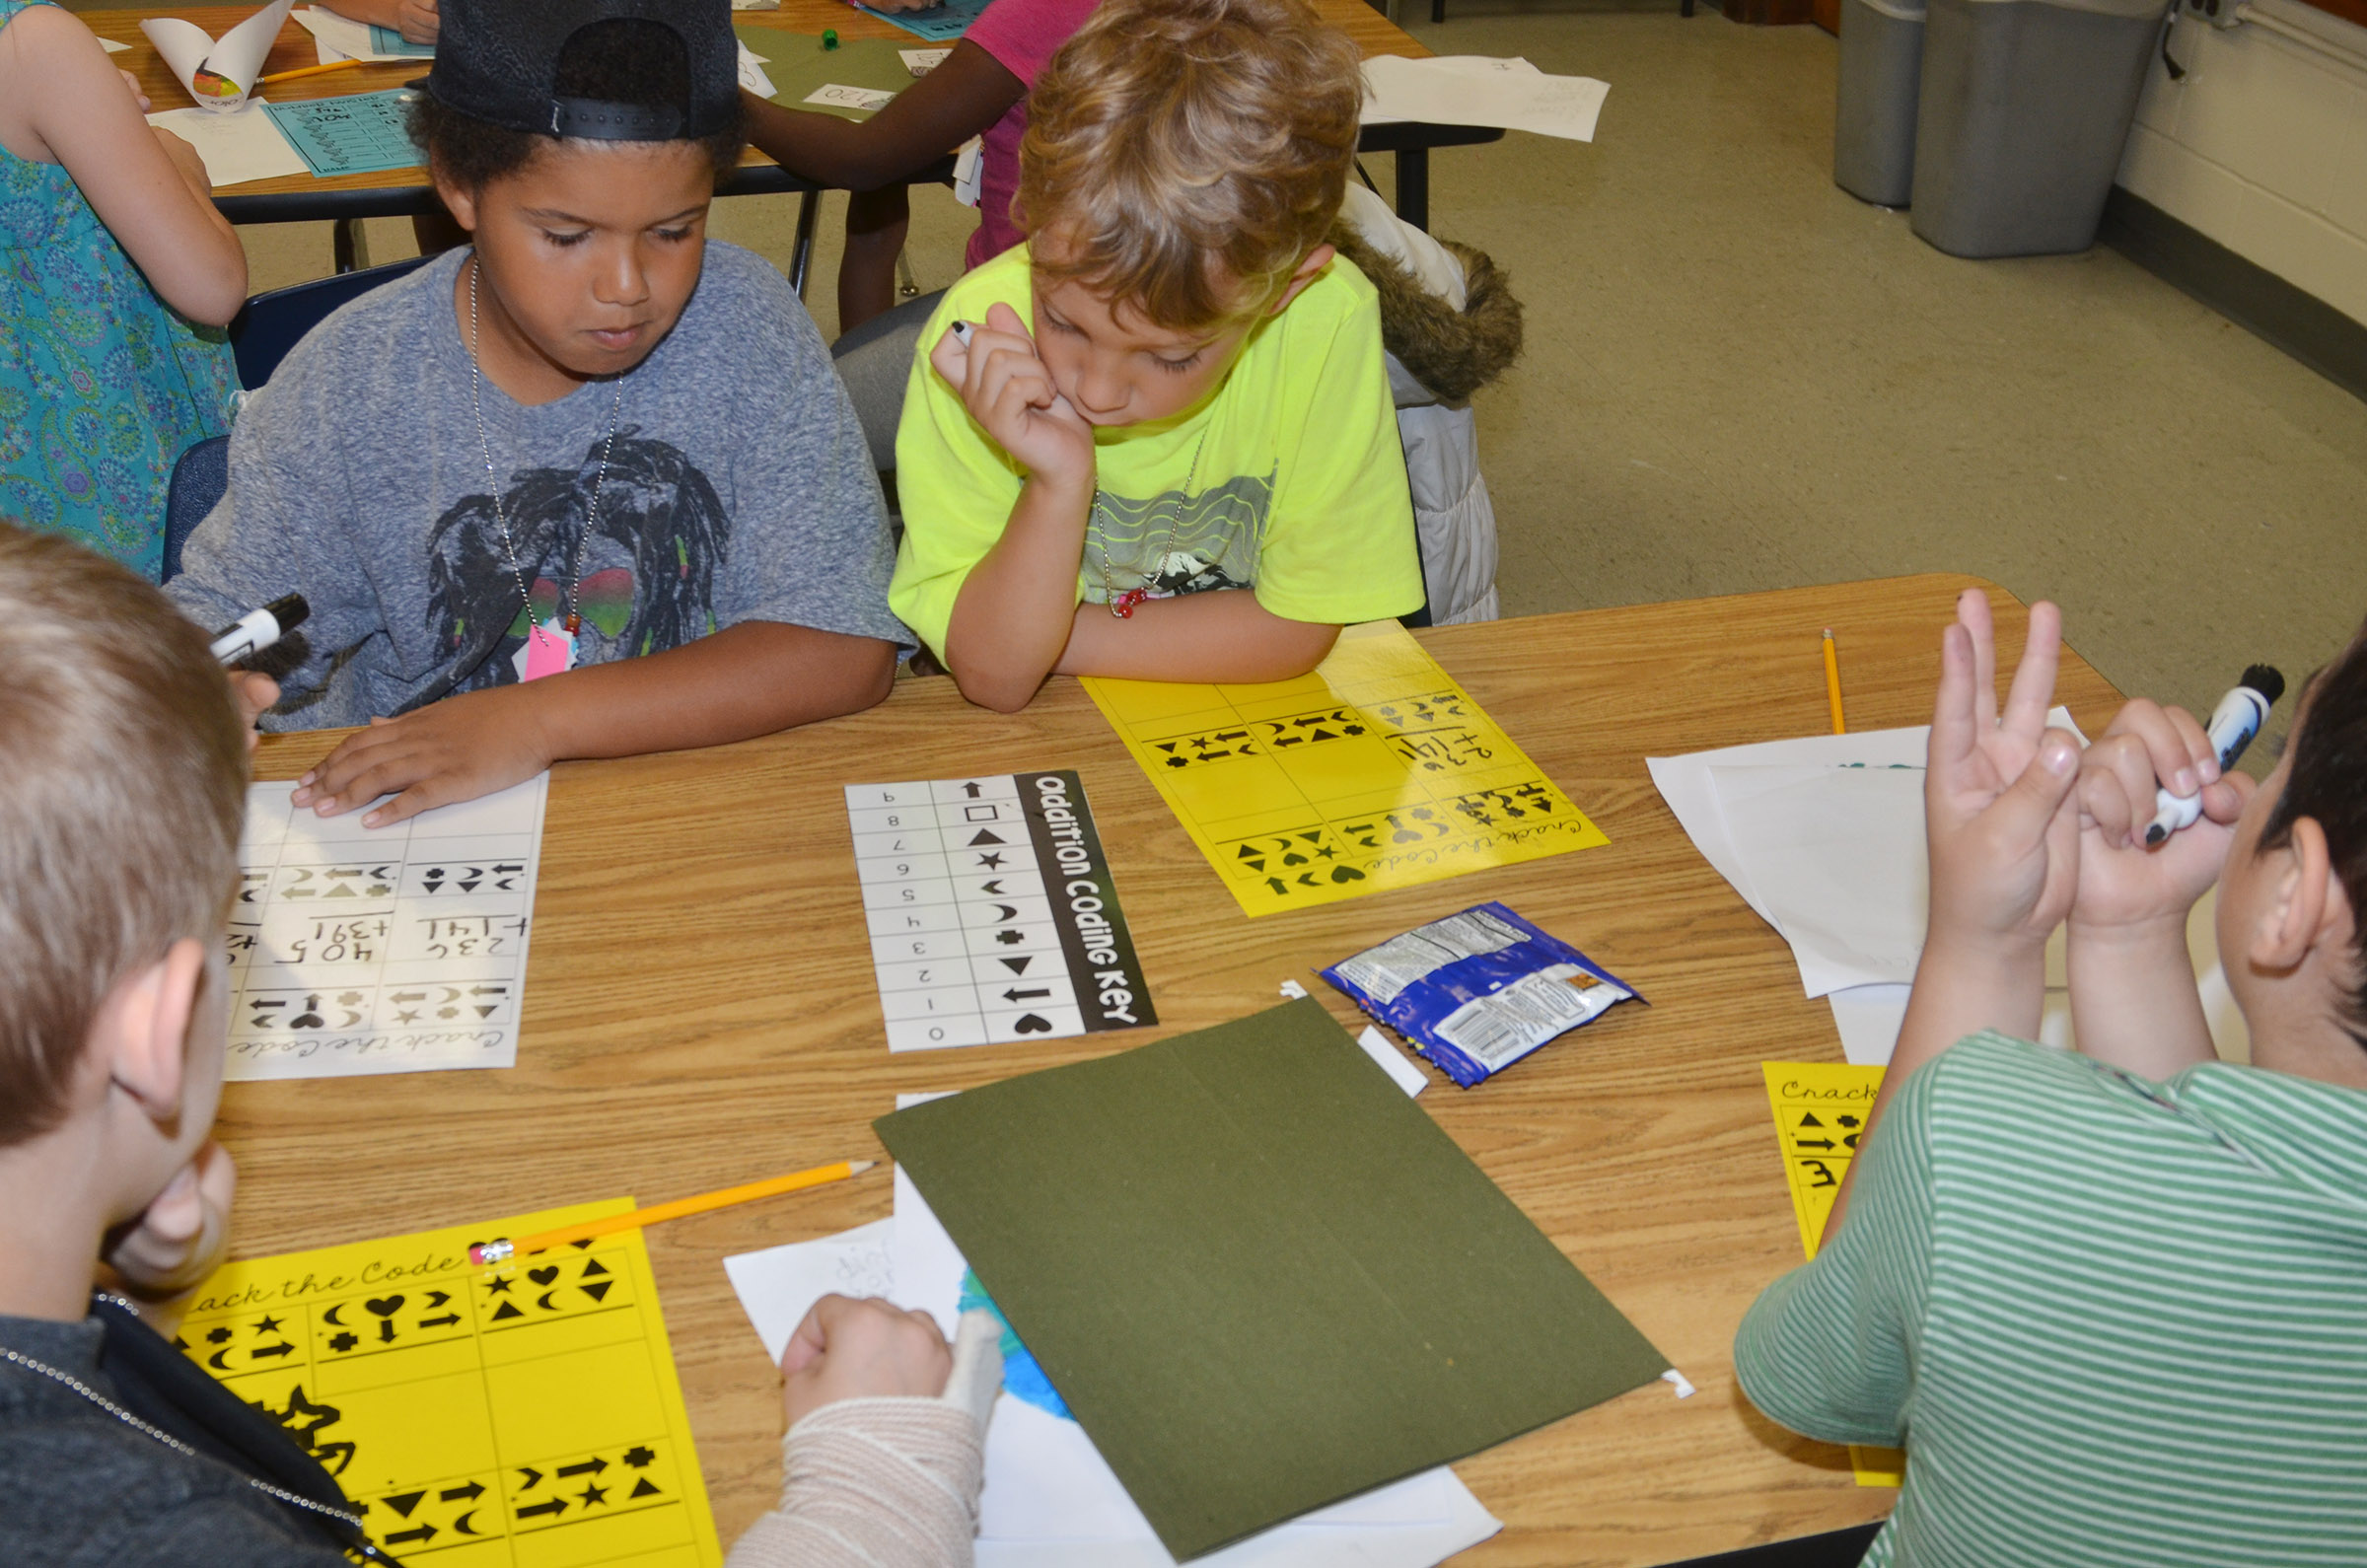 CES first-graders Navon Copeland, at left, and Gabe Prior try to decode some math problems with their classmates.